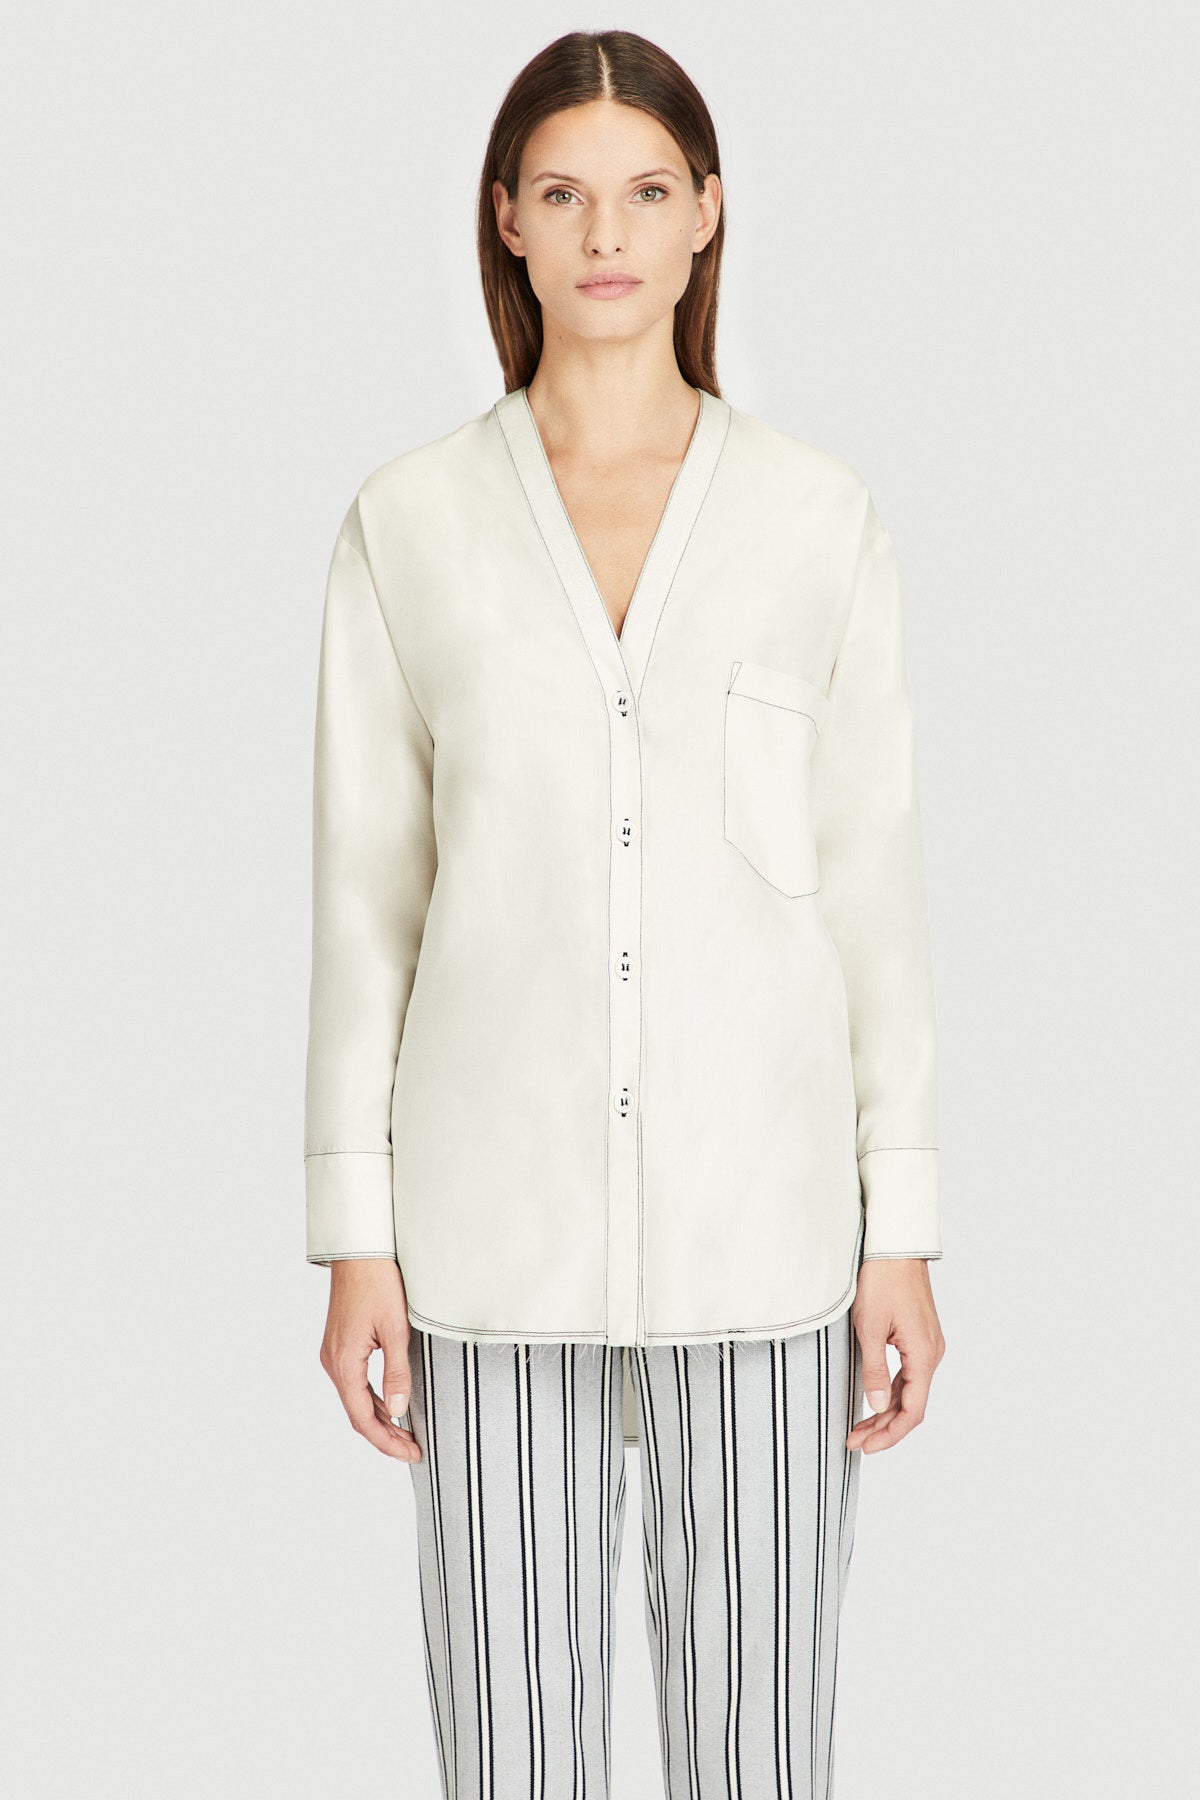 Off White Modal Contrast Stitch V-Neck Shirt